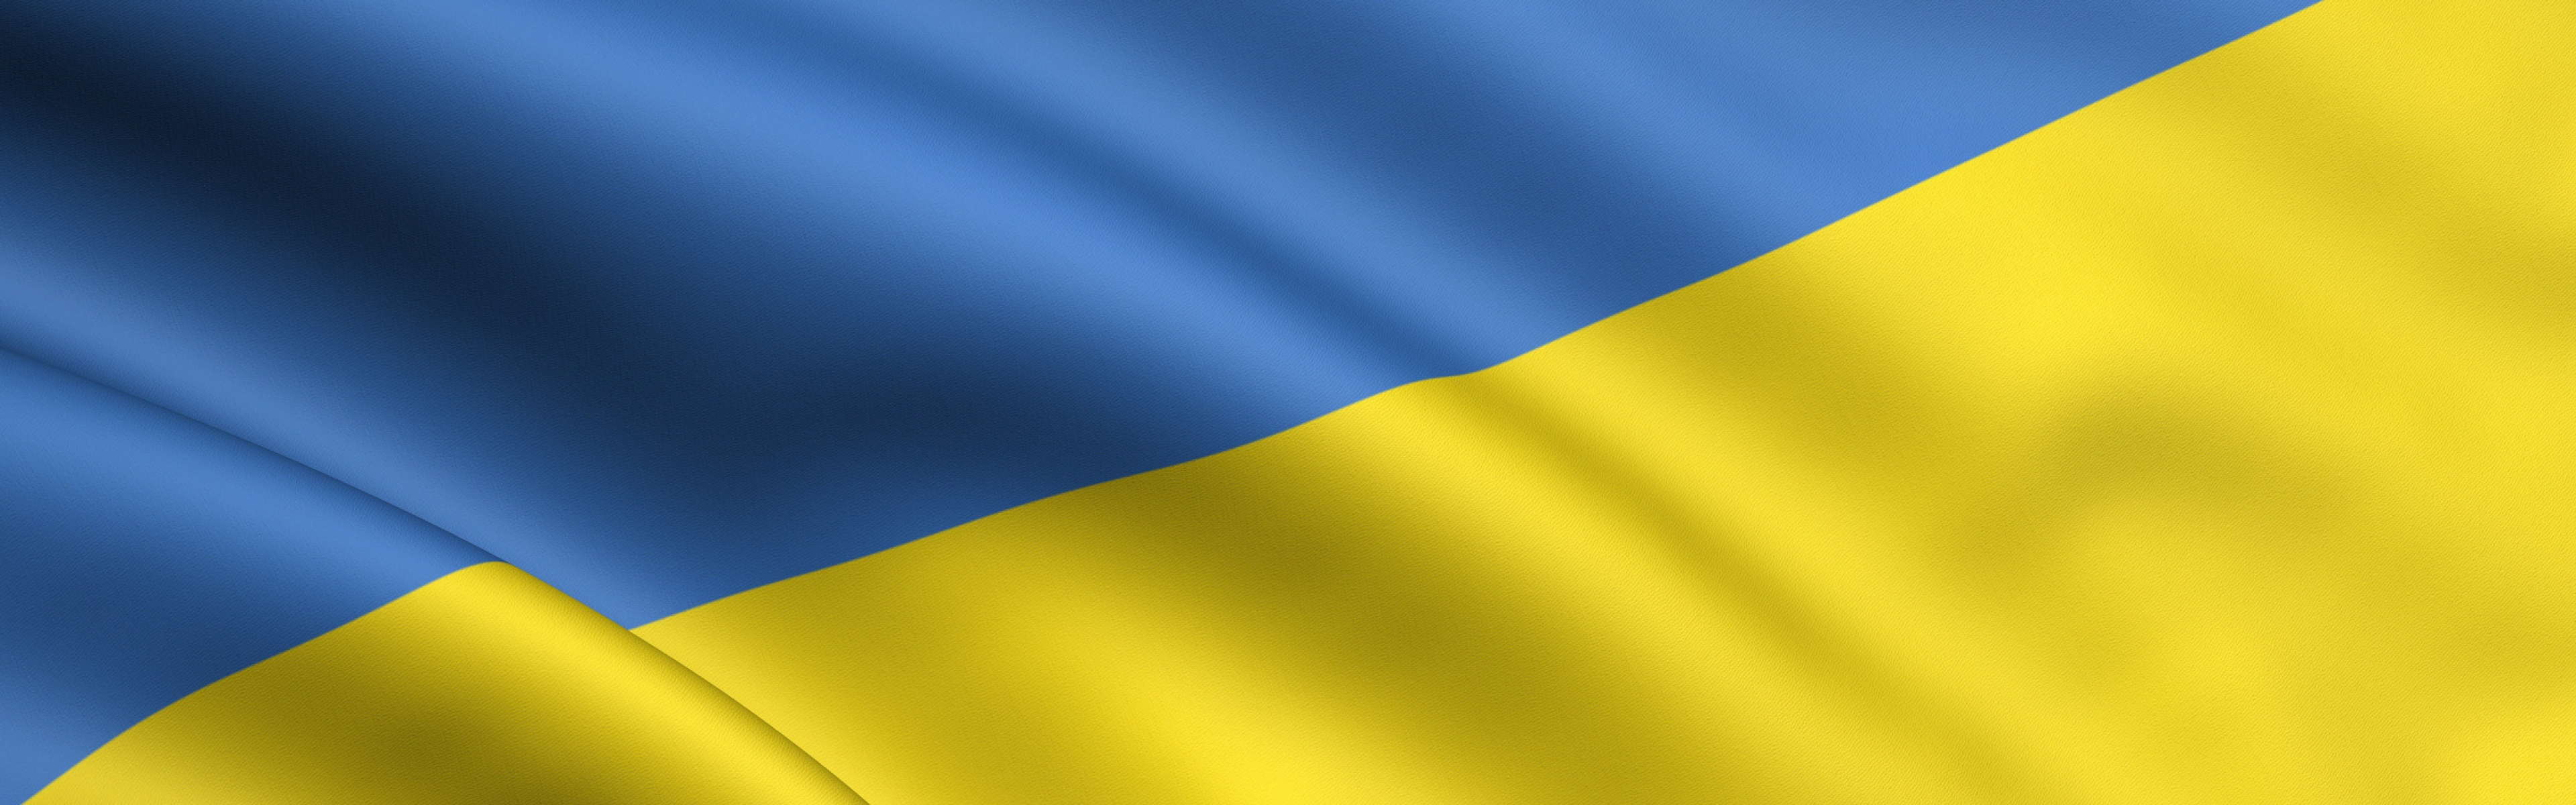 yellow_blue_flag_ukraine_18559_3840x1200